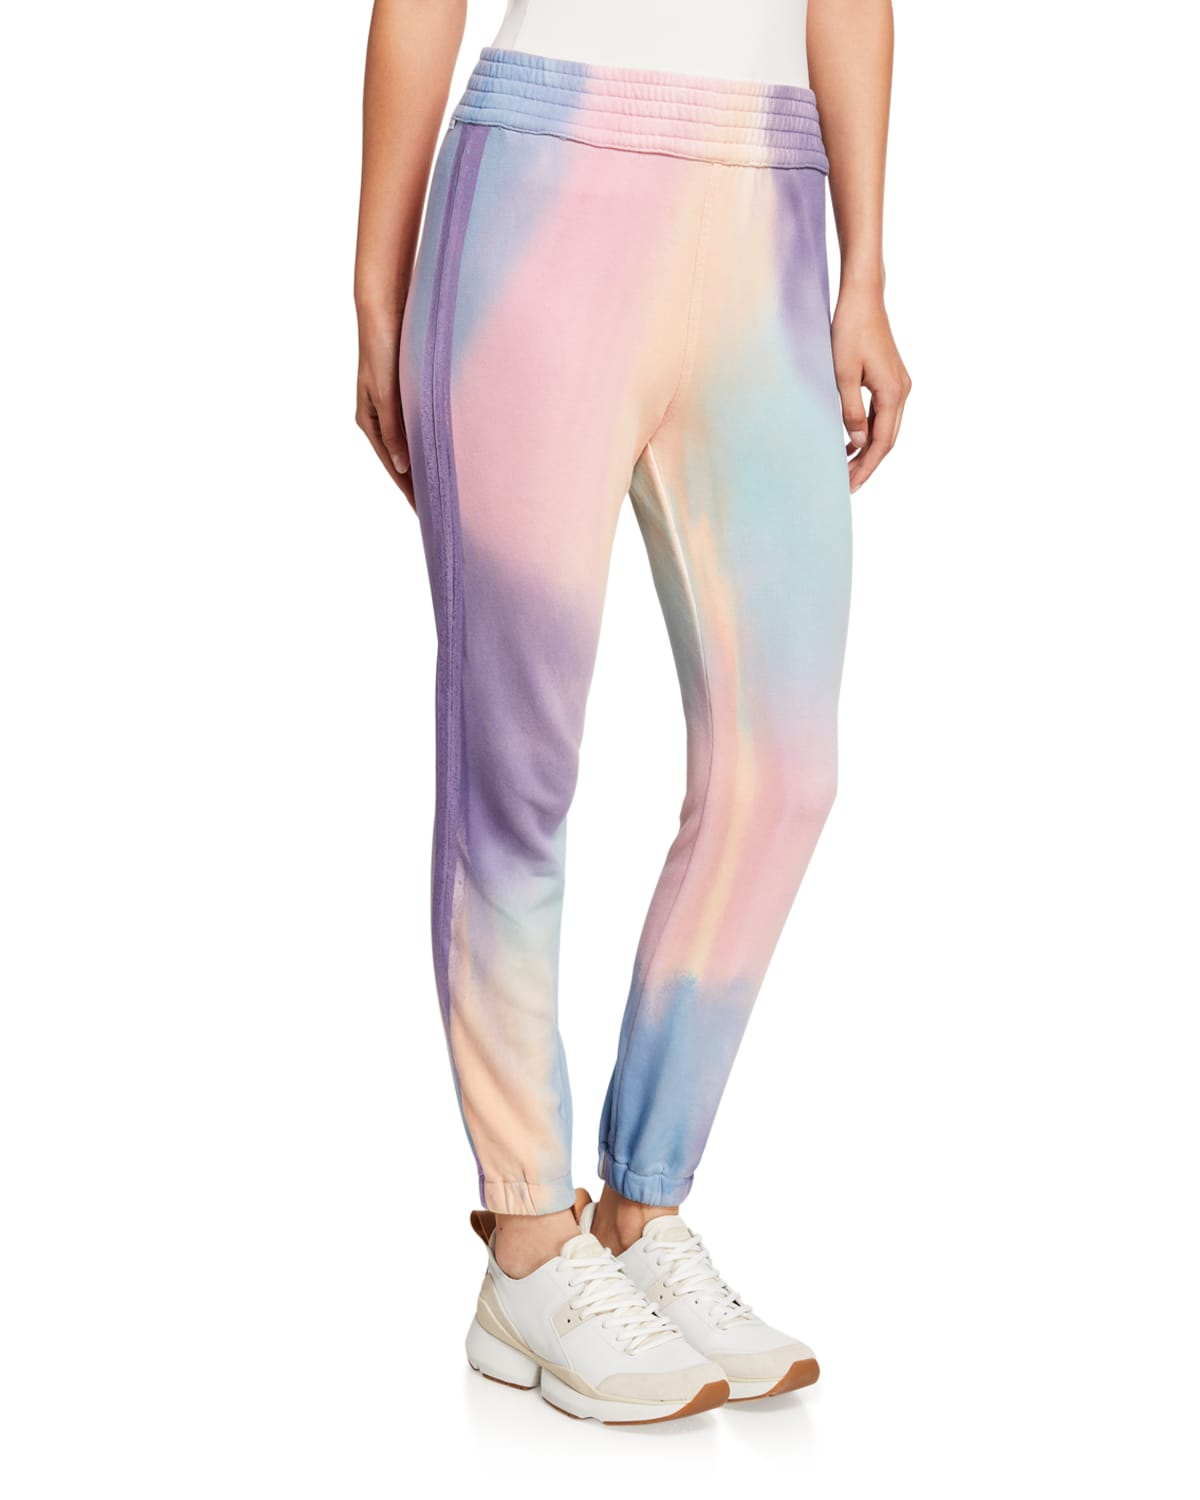 The Springy Lounger Ankle Jogger Pants